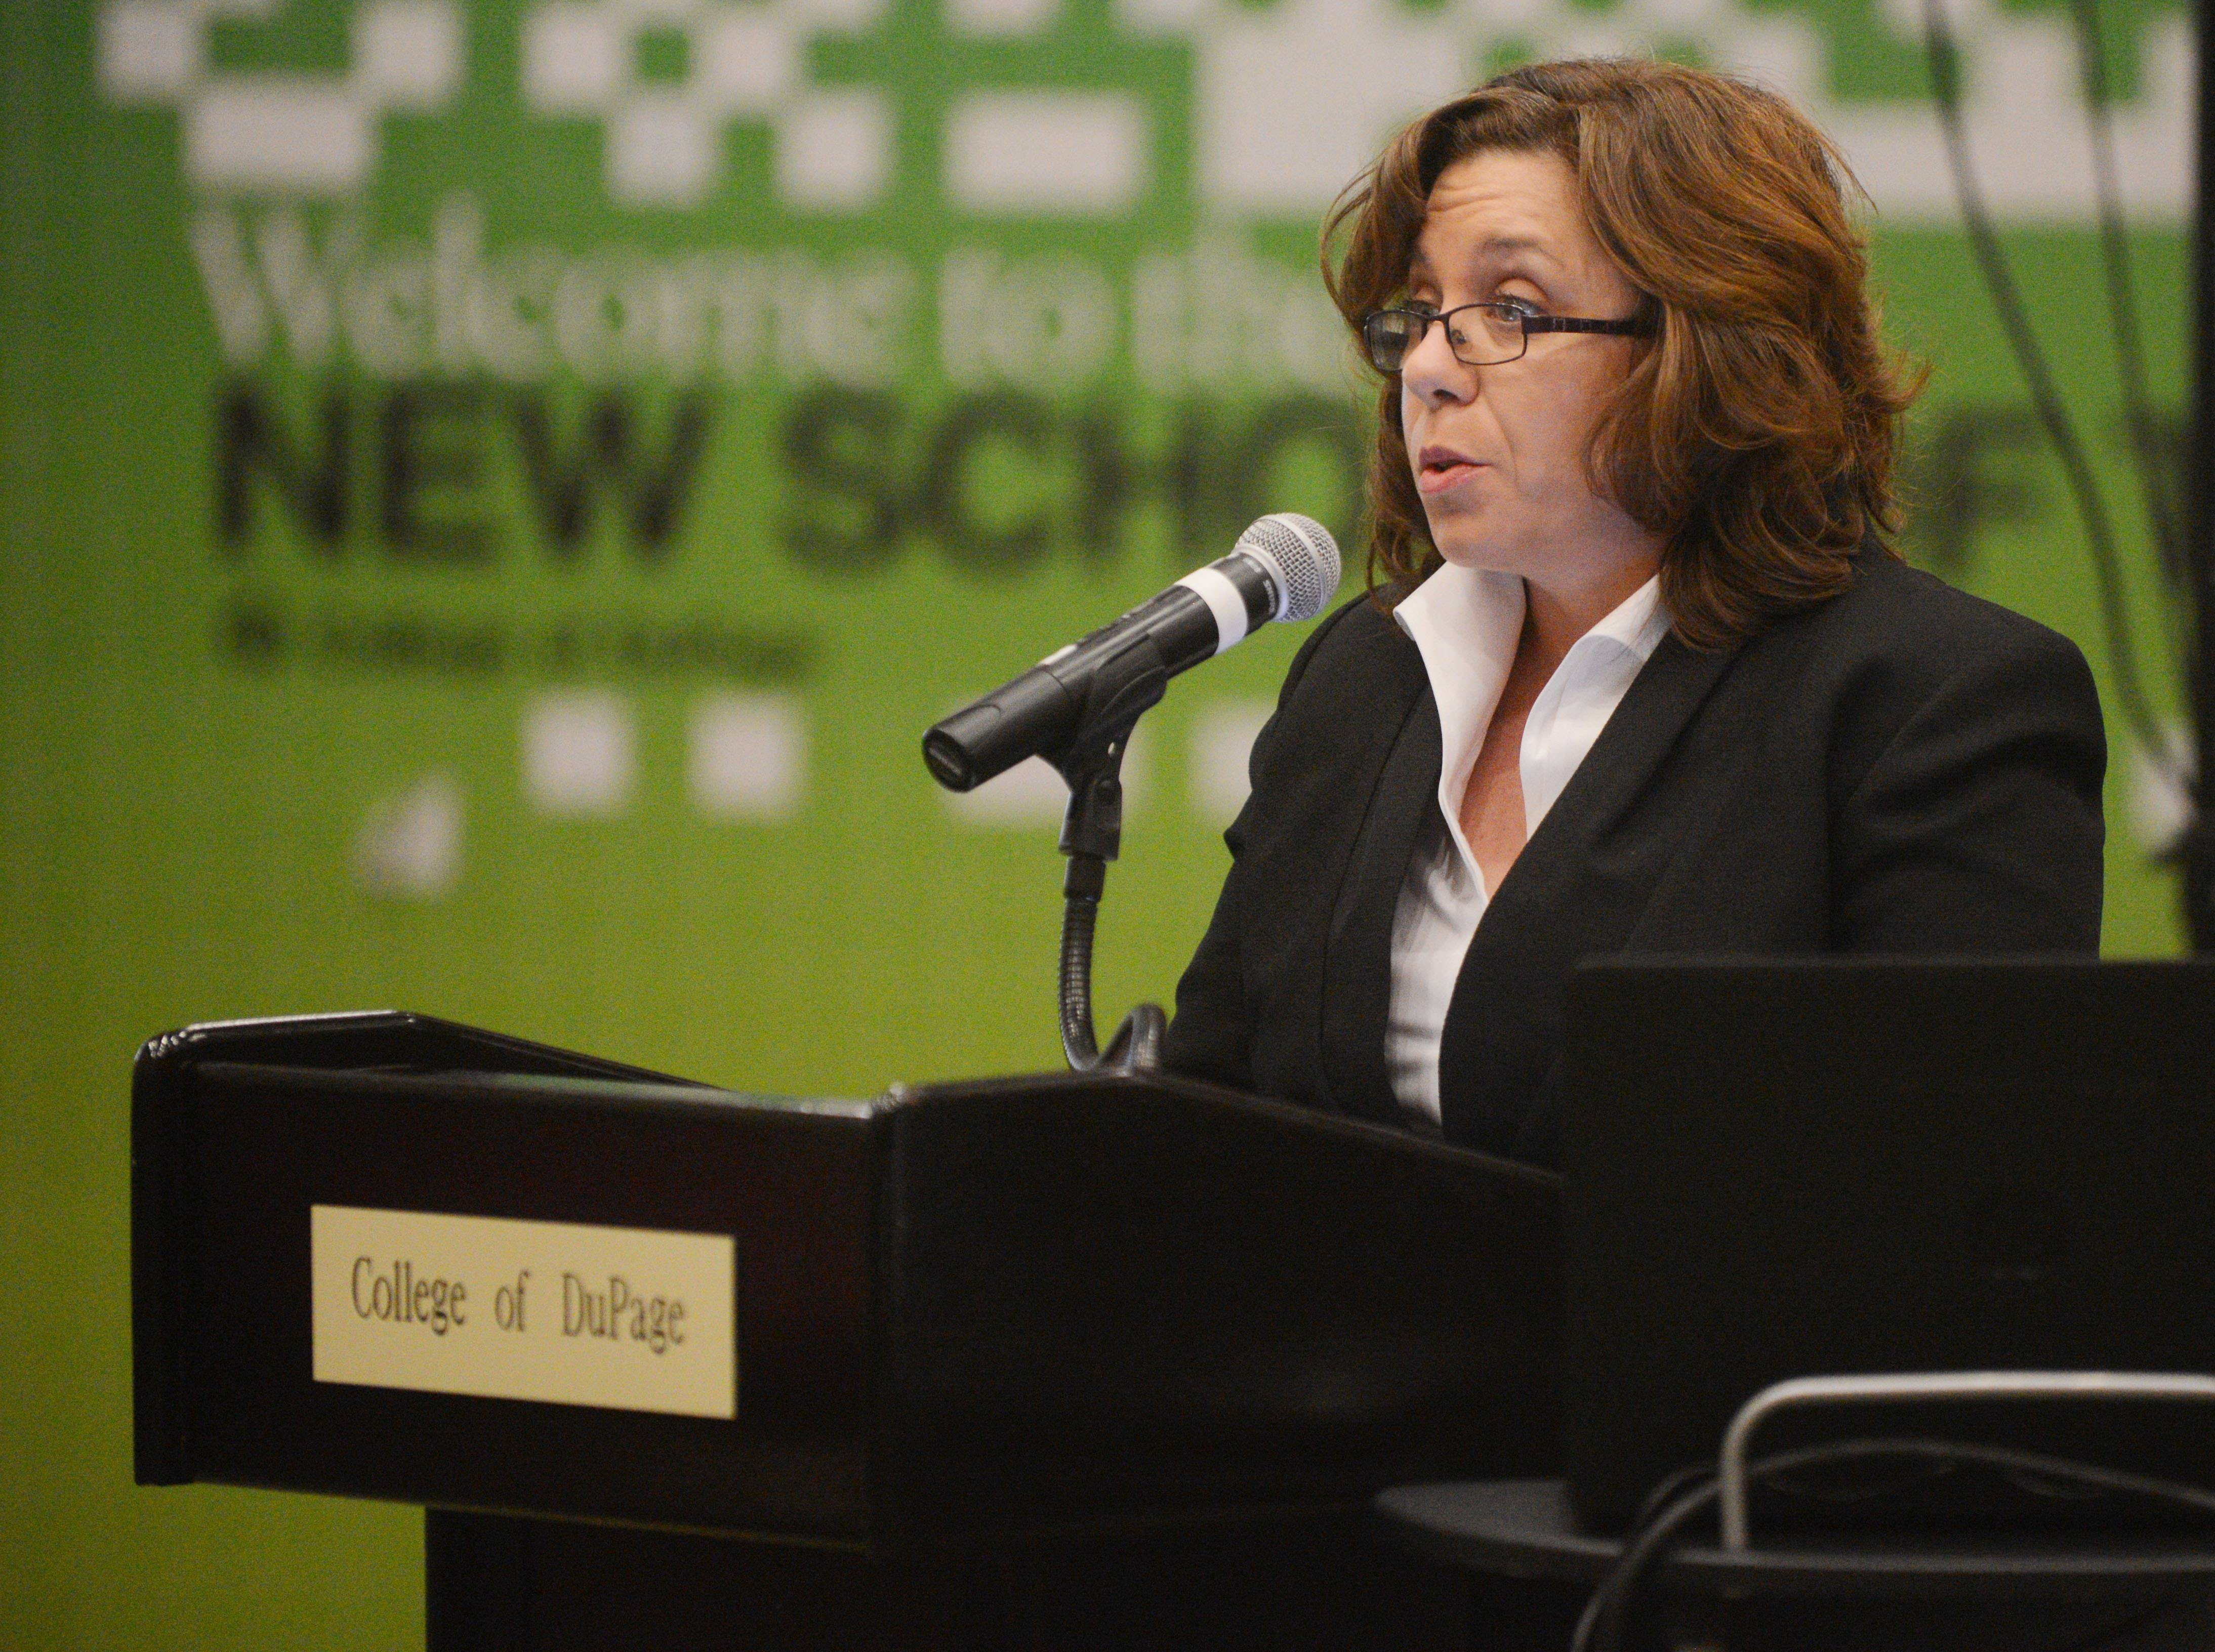 Laura Reigle voices her opinion about College of DuPage hiring a public relations firm at Thursday night's board meeting, saying the college already has a full-time spokesman.